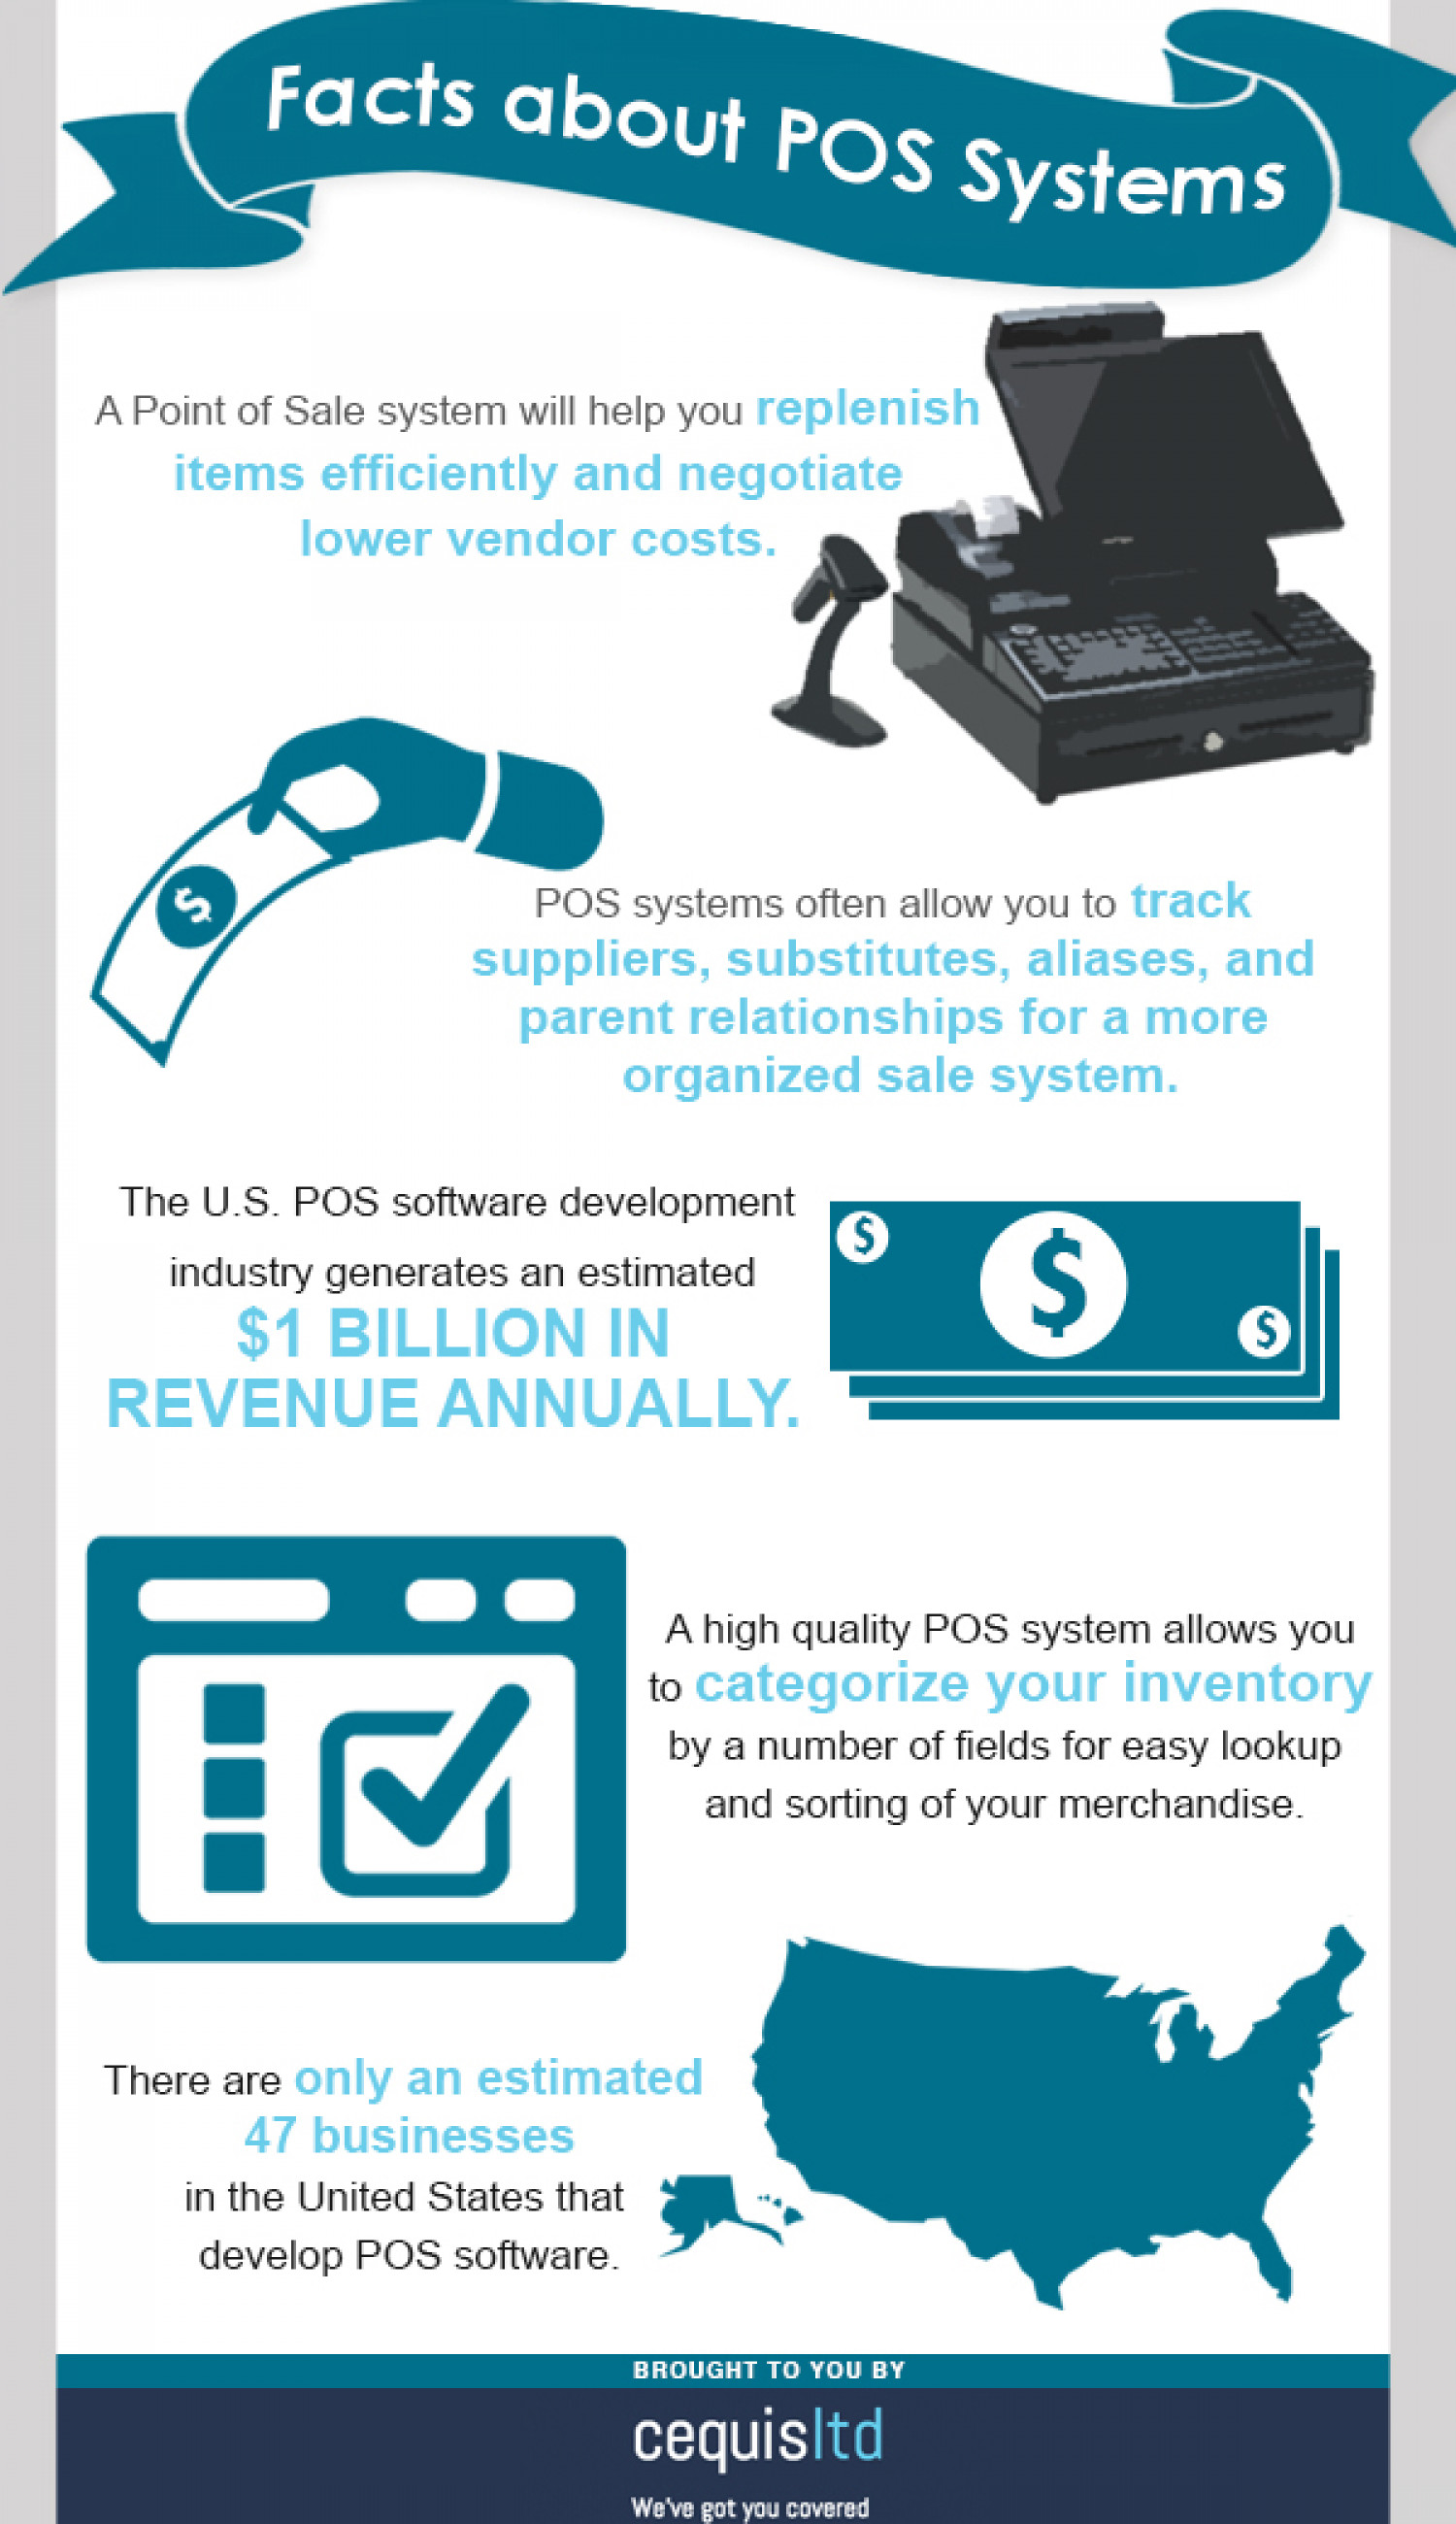 Facts about POS Systems Infographic